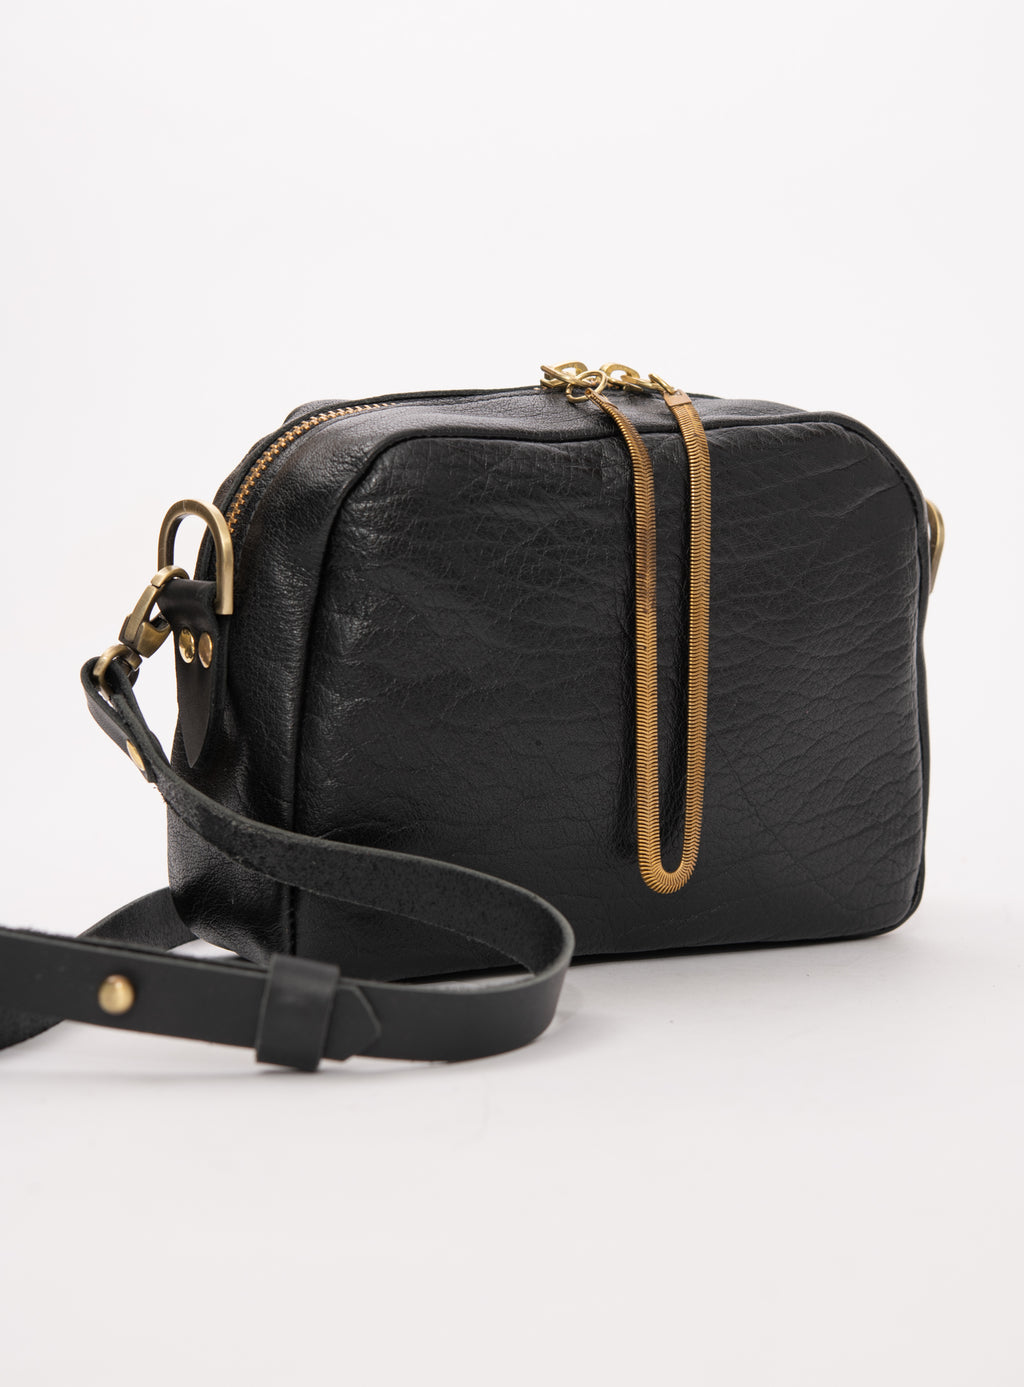 Veinage Cartier black leather crossbody bag